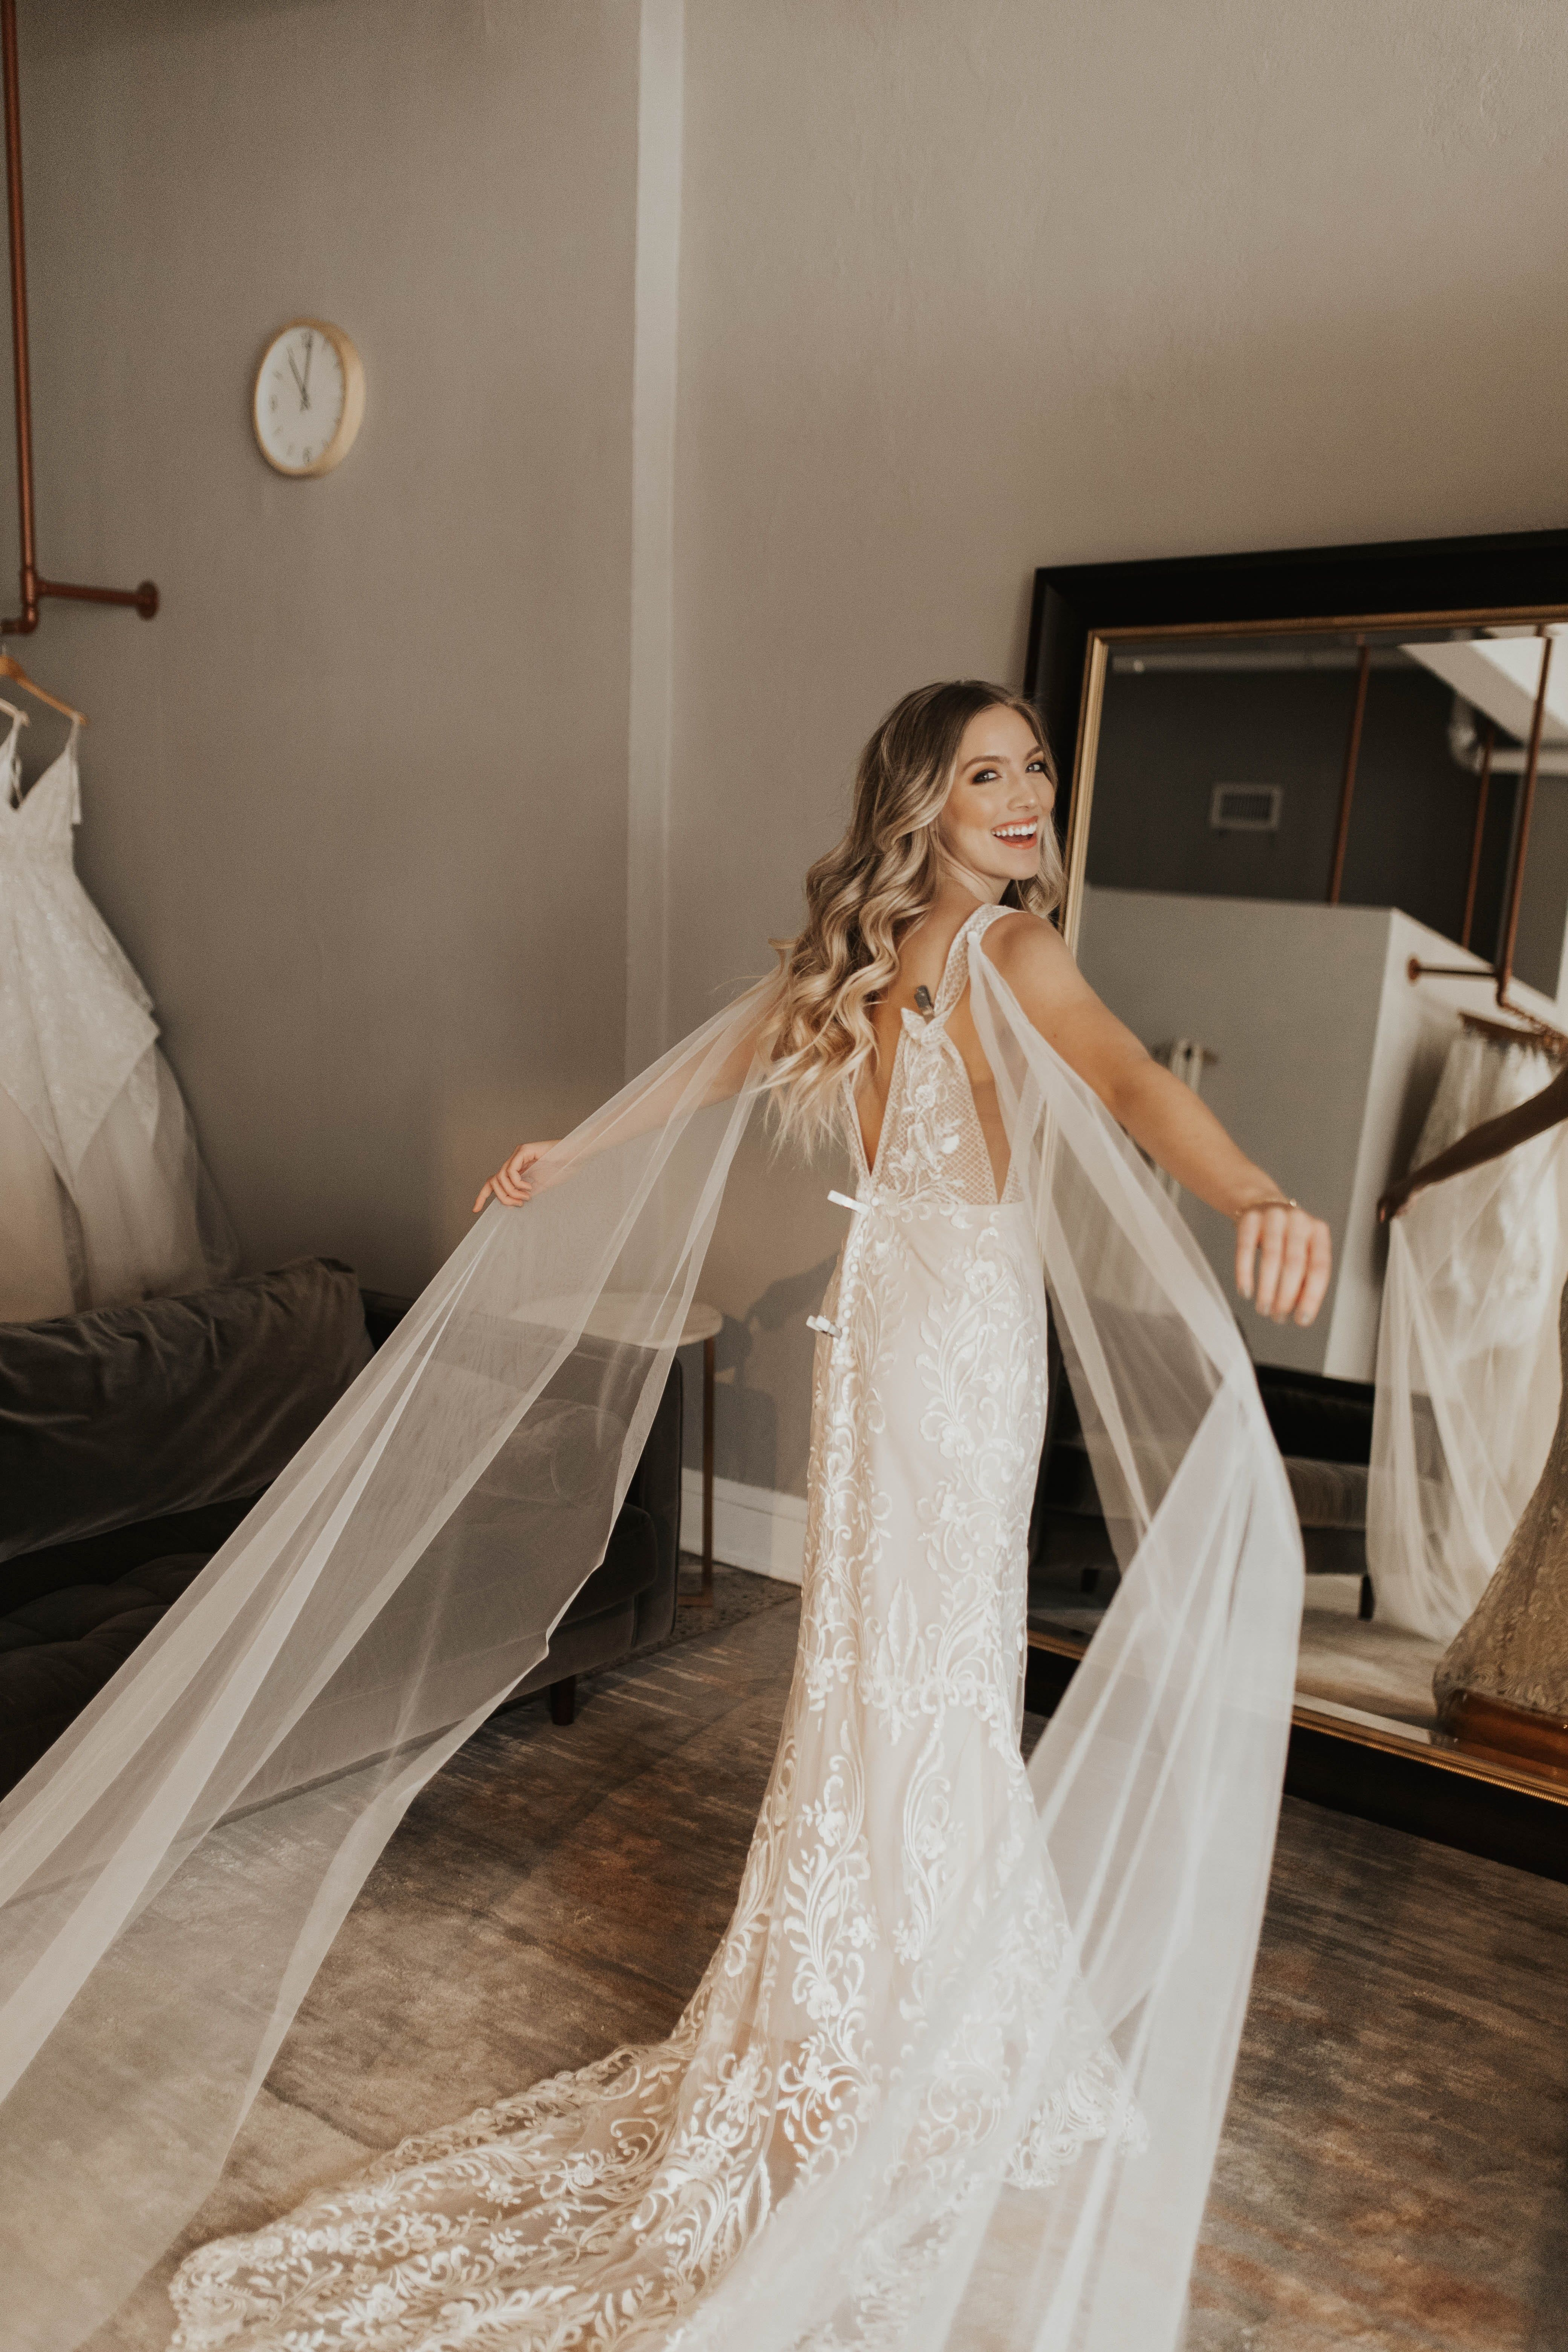 Riley by Made With Love | Available at Minneapolis, Dallas, Denver, Miami, Seattle + Portland a&bé bridal shops | Plunging fitted applique lace wedding dress with lowback | Modern Bridal Shop | Modern Bride | Cool Girl Bridal | 2019 Wedding Dresses | Made With Love Bridal | Photos by: Nicole Castonguay | #madewithlove #mwlgirl #madewithlovebridal #aandbebridalshop #bridalshops